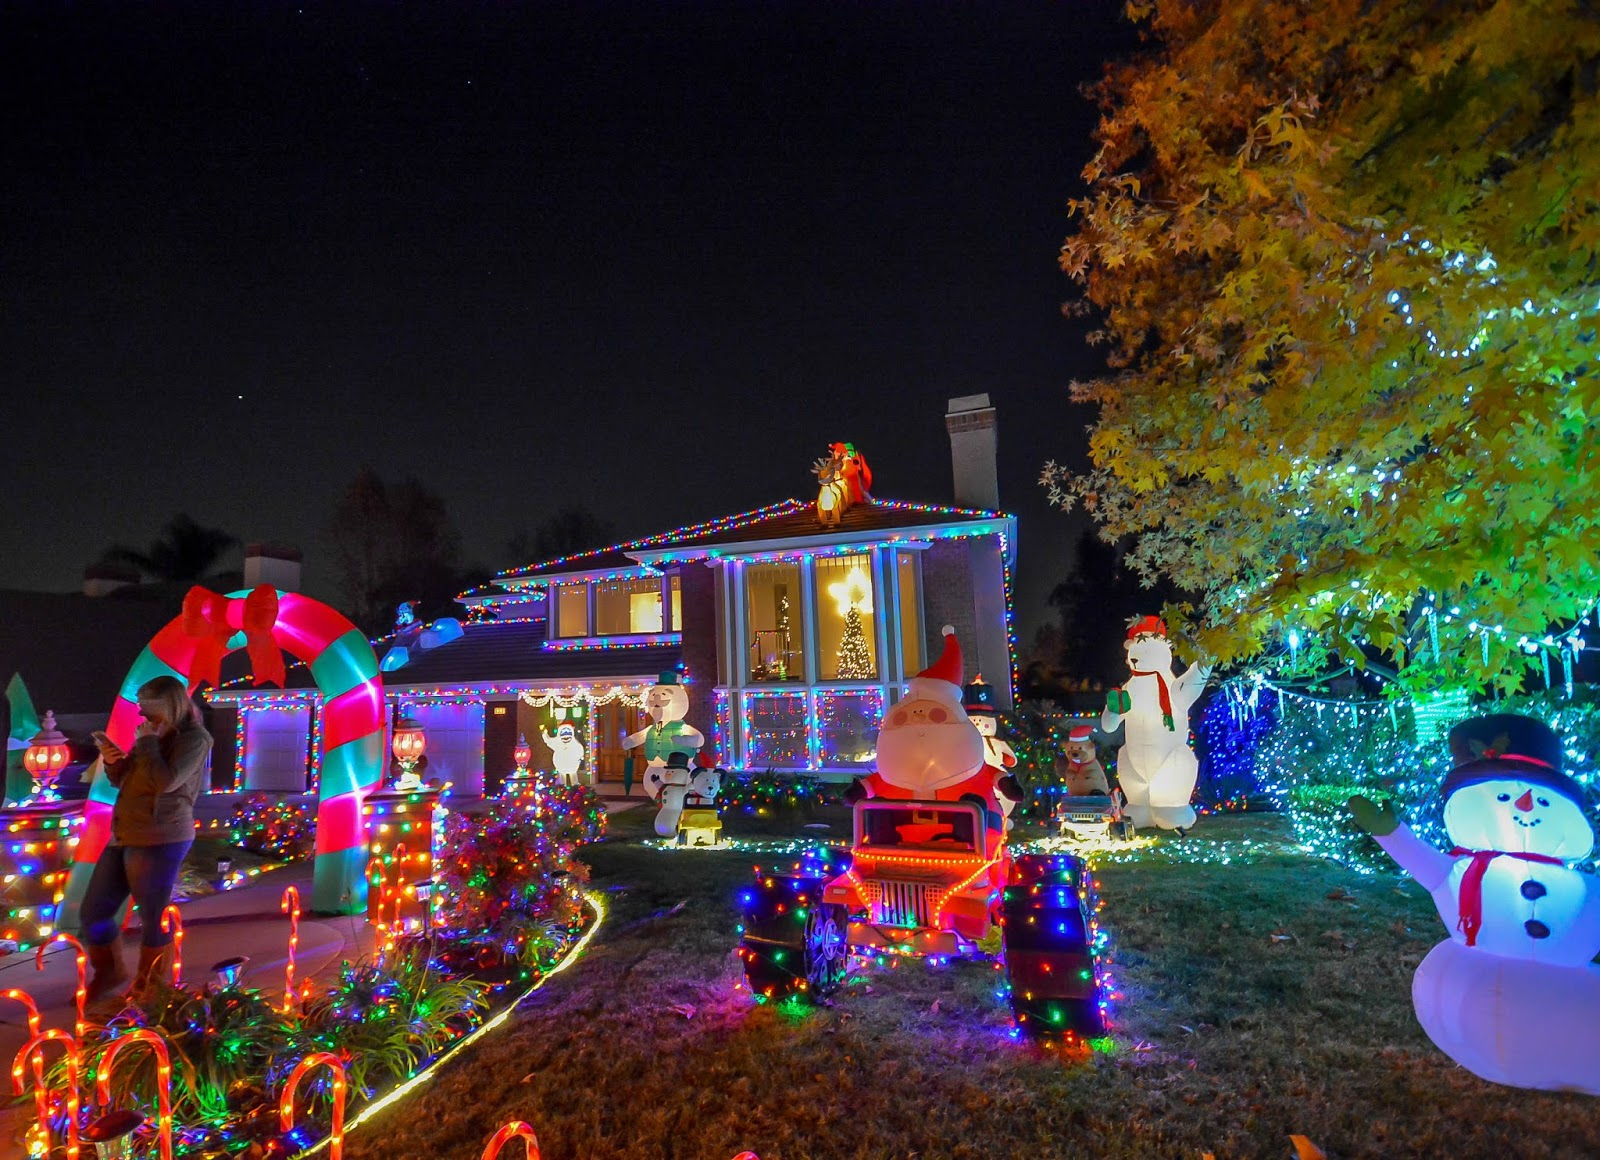 thoroughbred christmas lights 2017 in rancho cucamonga a christmas spectacle - Thoroughbred Christmas Lights